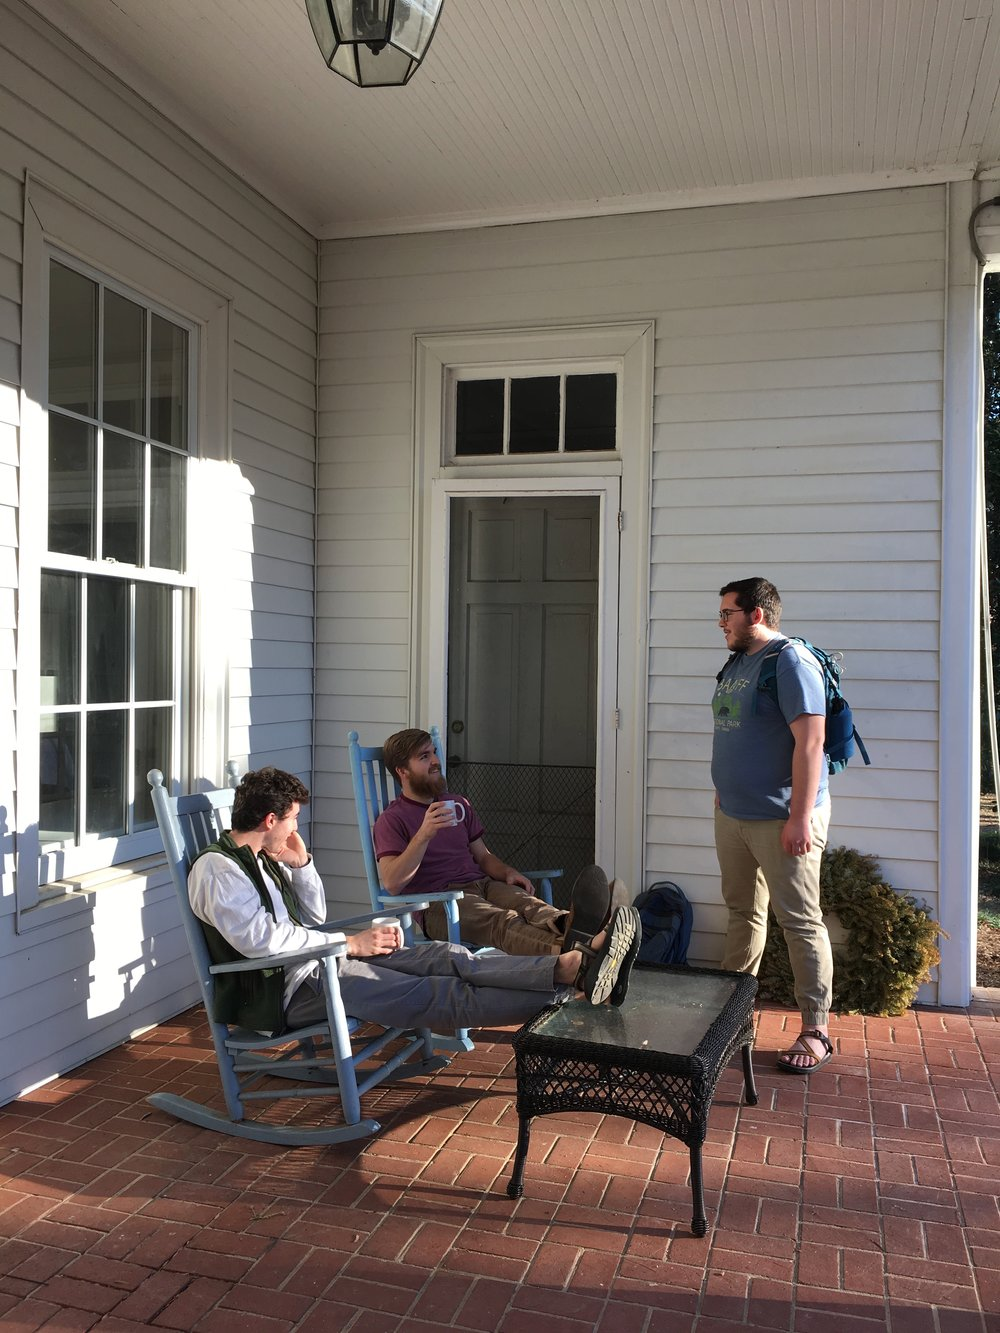 The rocking chairs on the front porch are certainly well-used for both casual and formal conversations.